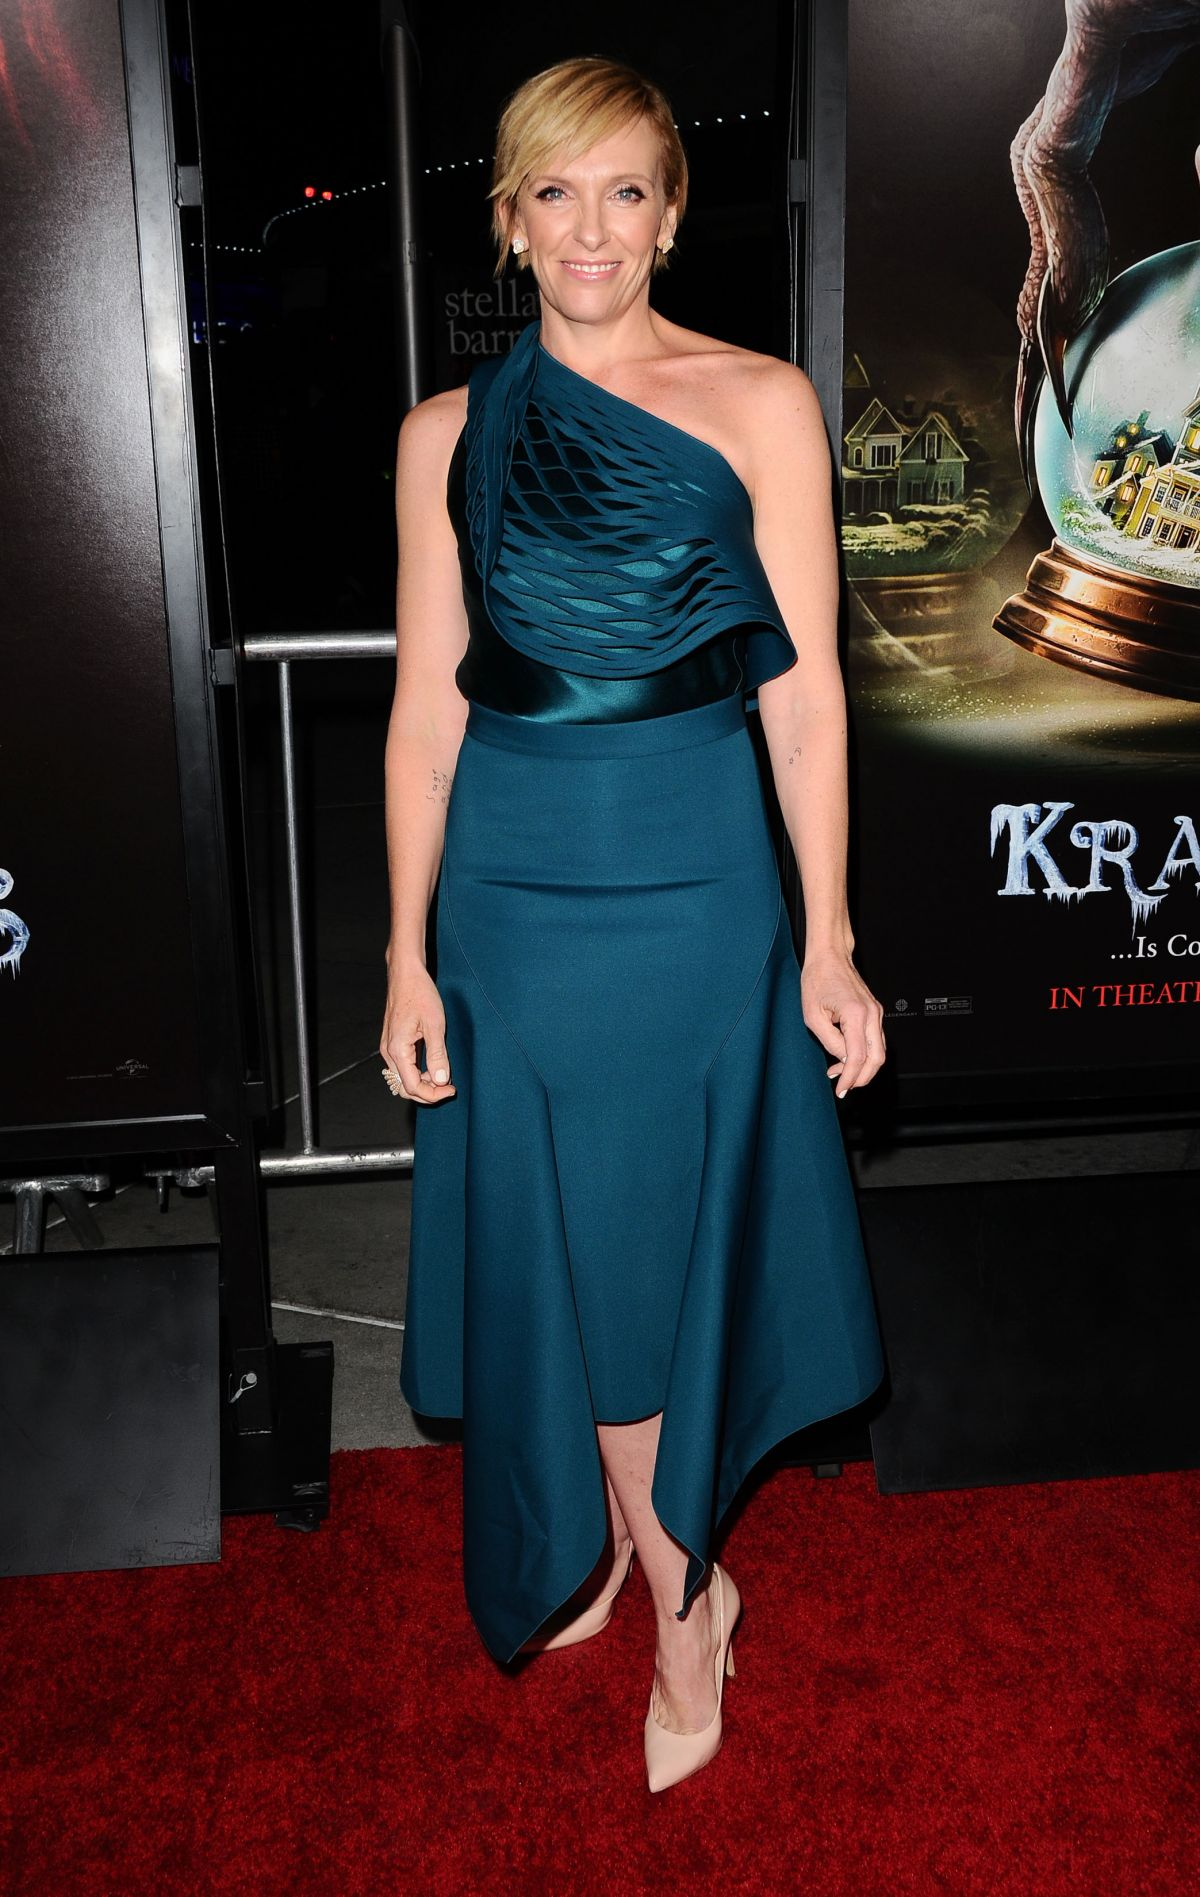 TONI COLLETTE at Krampus Premiere in Hollywood 11/30/2015